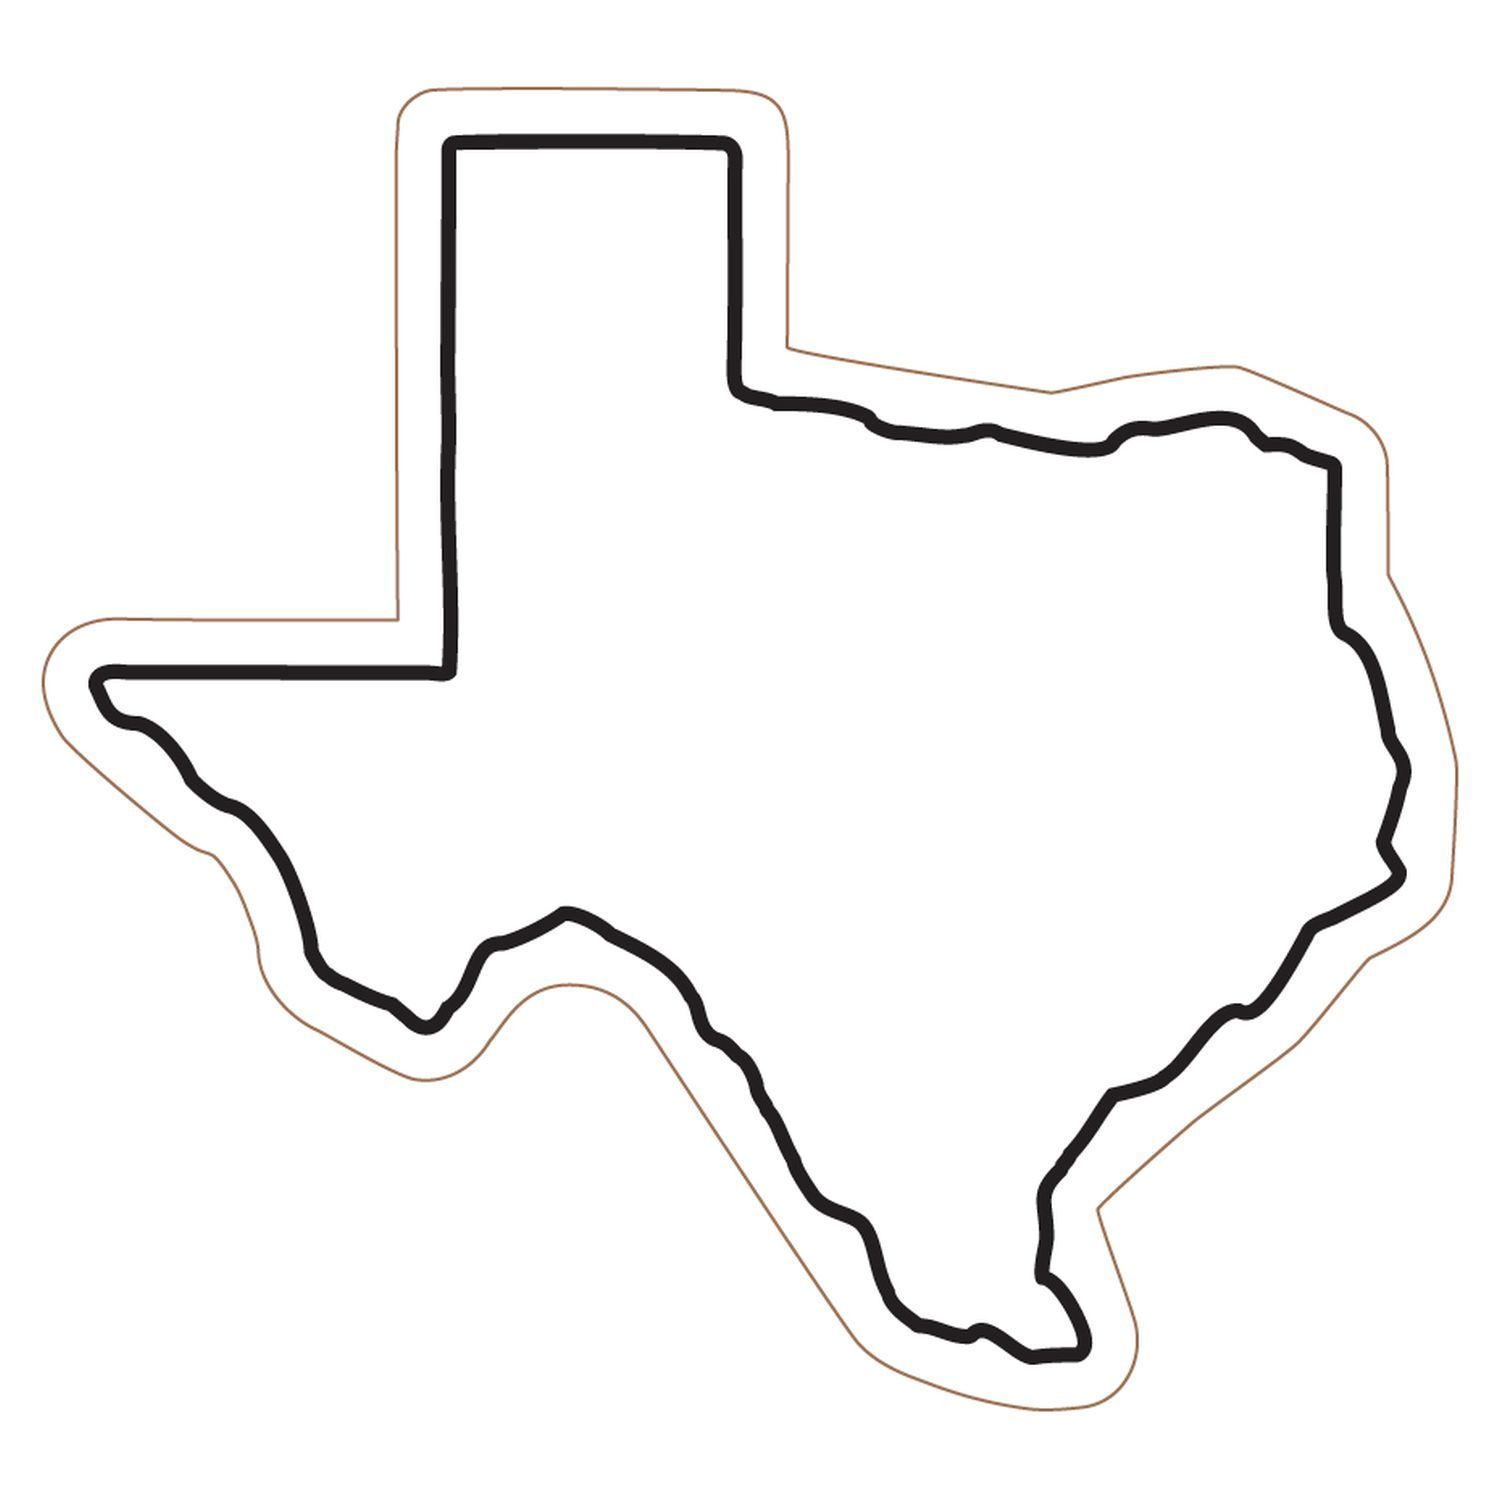 1500x1500 Photos Of Texas Map Clip Art Texas State Shape Outline